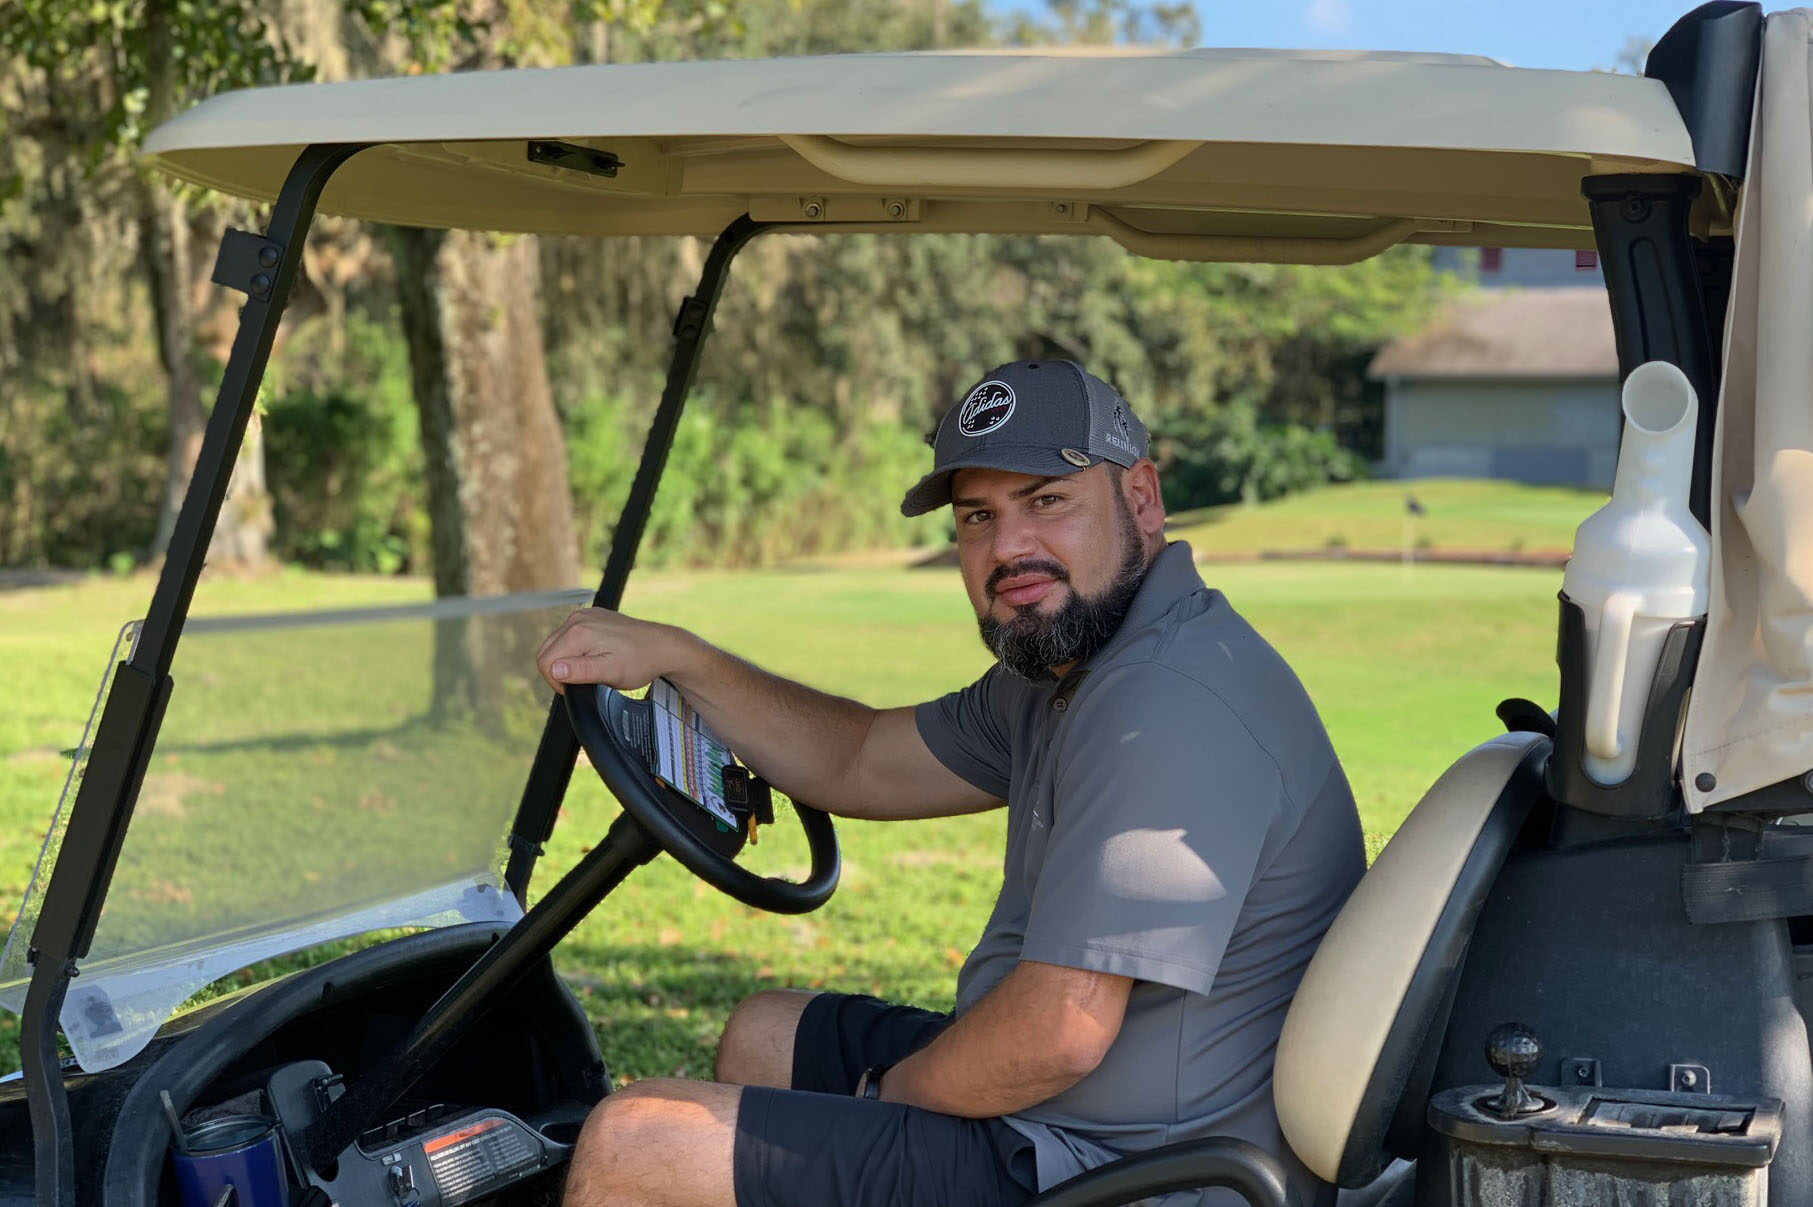 Iraq War veteran Roberto Cruz said he realized he needed mental health treatment after he got sick with COVID-19 in July and spent weeks in isolation.